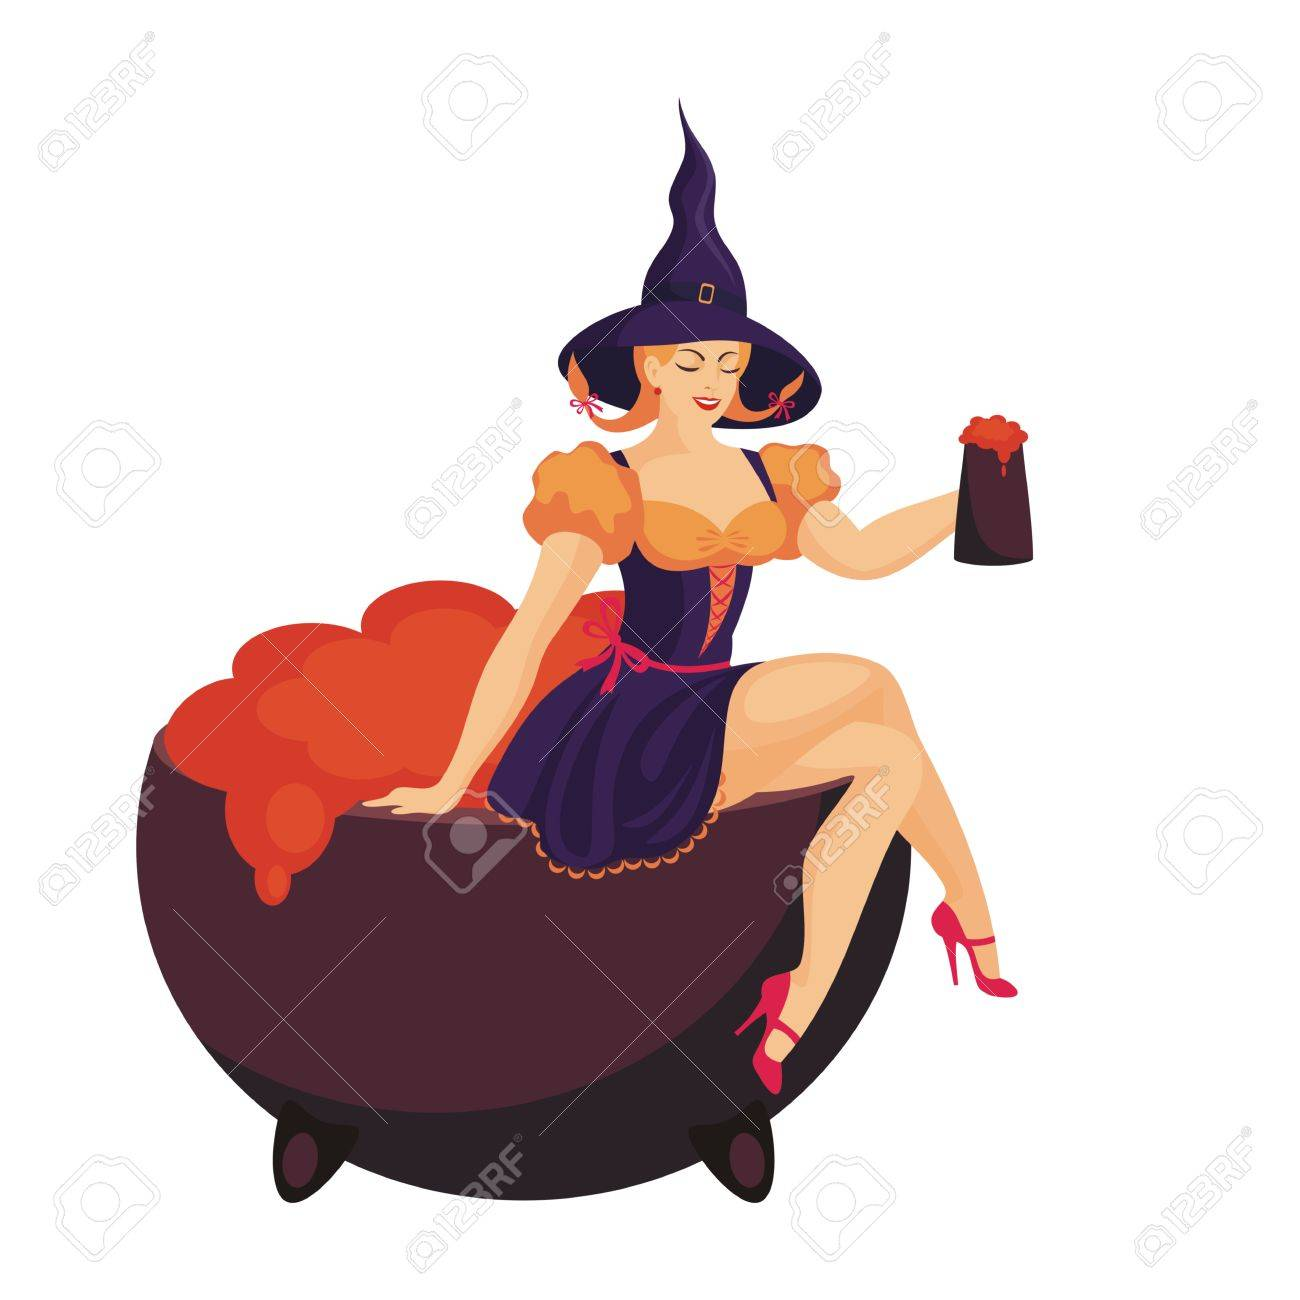 Beautiful young woman in a witch costume holding a mug of beer Stock Vector - 87468331  sc 1 st  123RF.com & Beautiful Young Woman In A Witch Costume Holding A Mug Of Beer ...